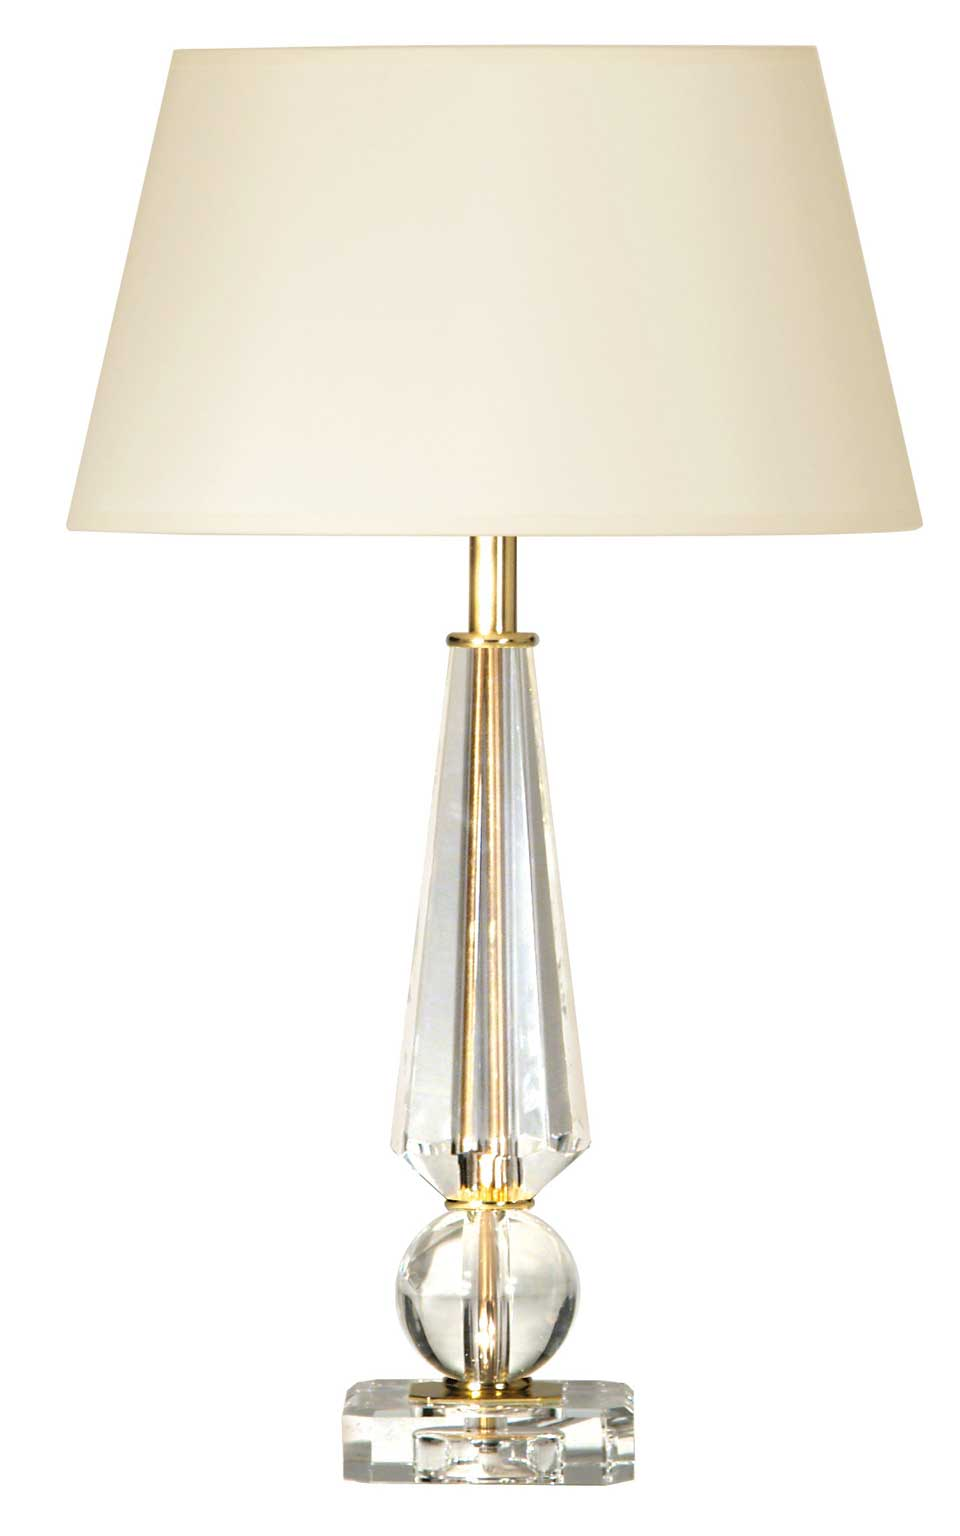 Diamond and ball optical glass shapes and gold metal table lamp Coty. Le Dauphin.